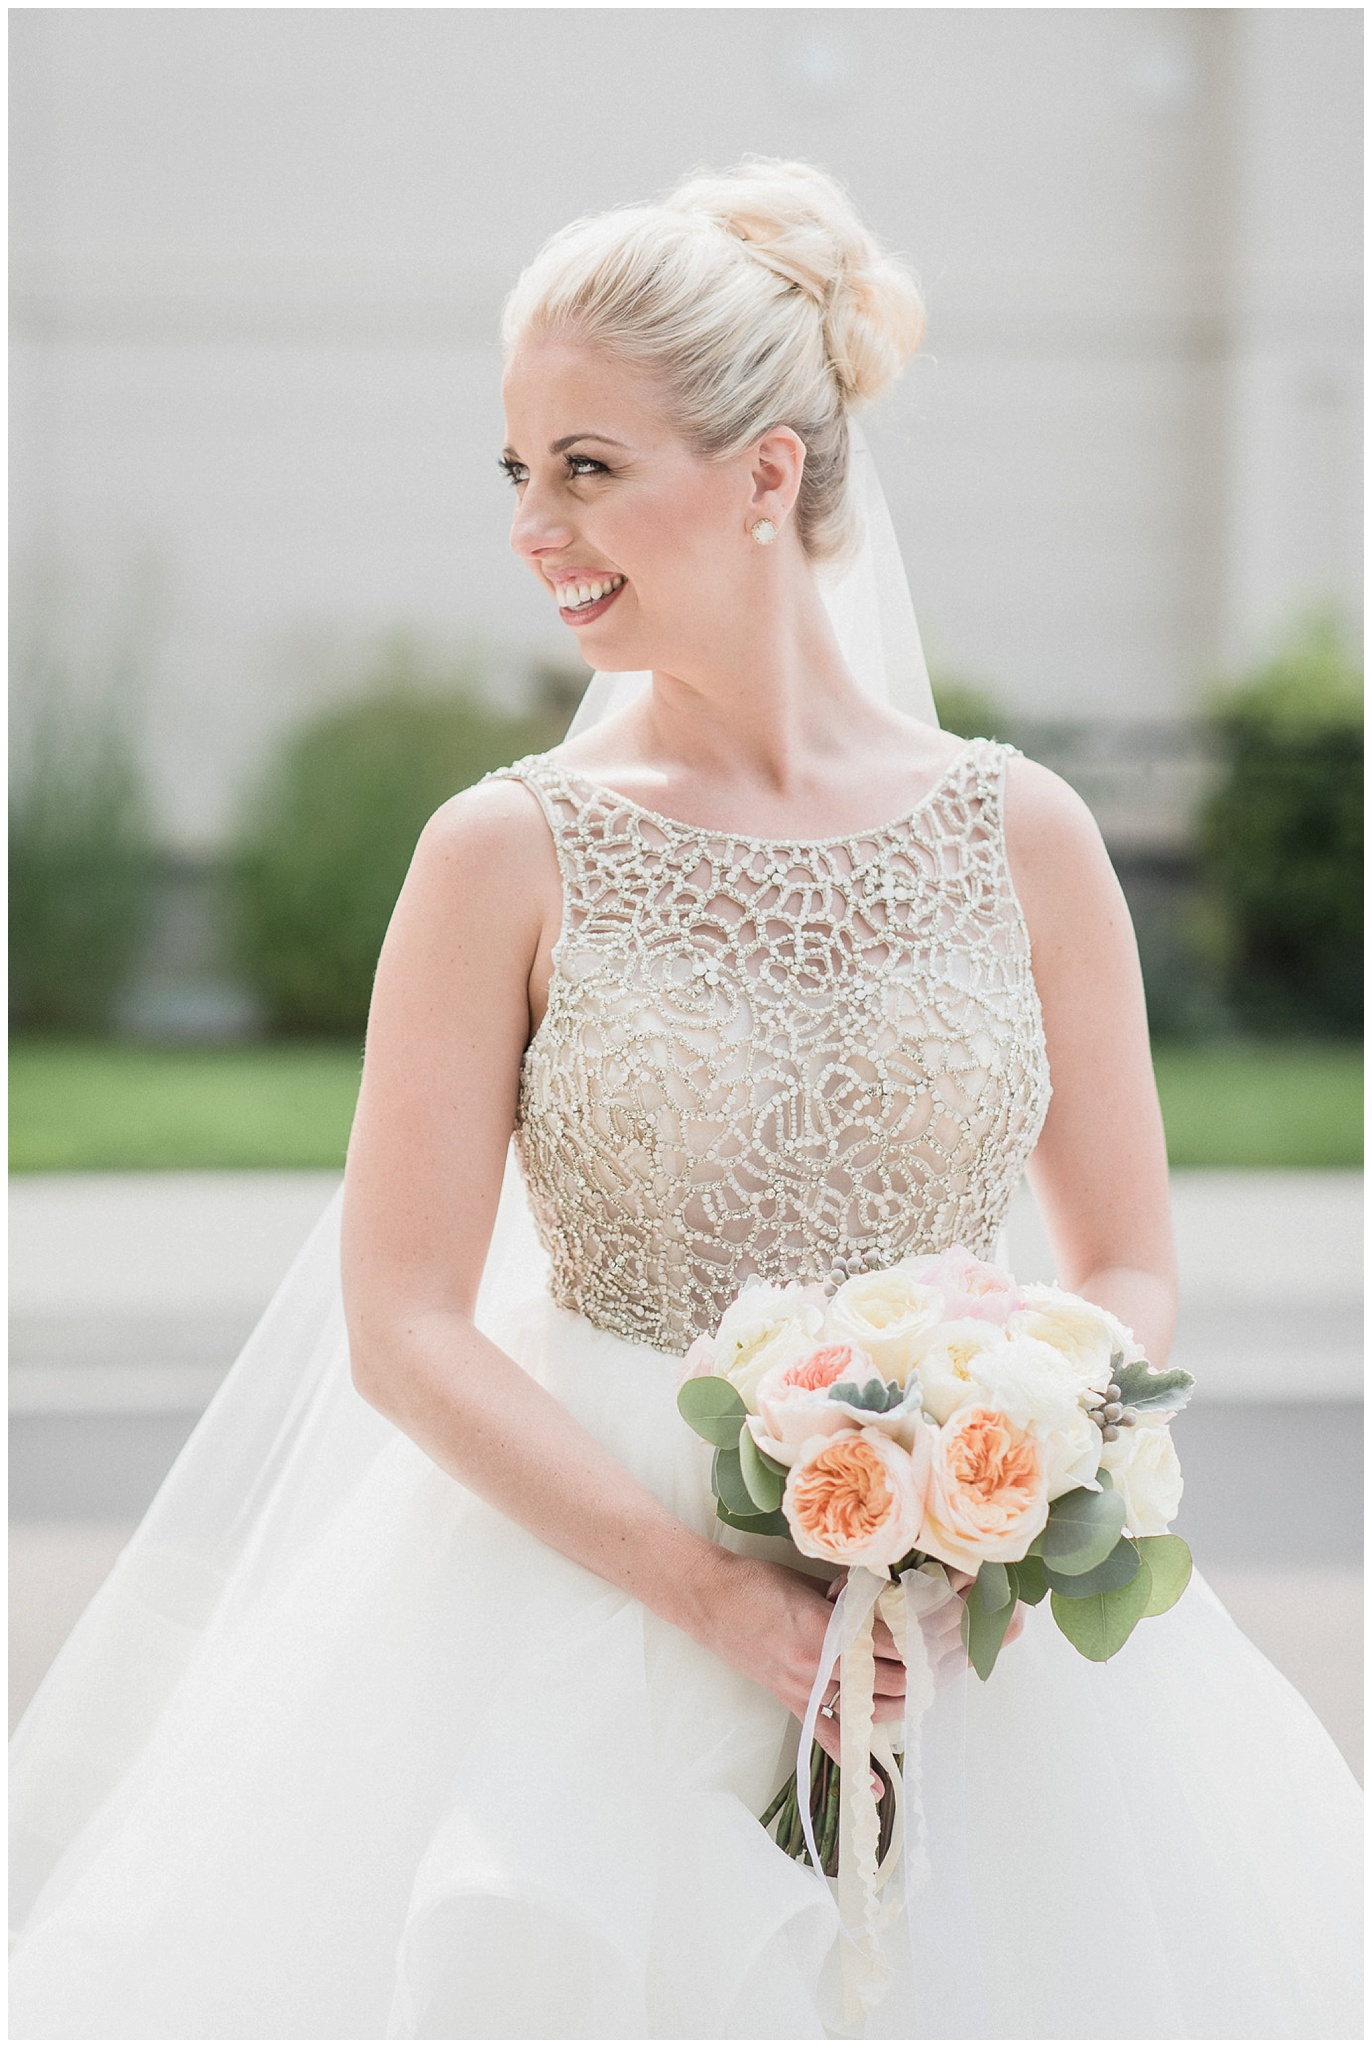 Beautiful bride in Hayley Paige Dori gown photographed by Jenn Kavanagh Photography